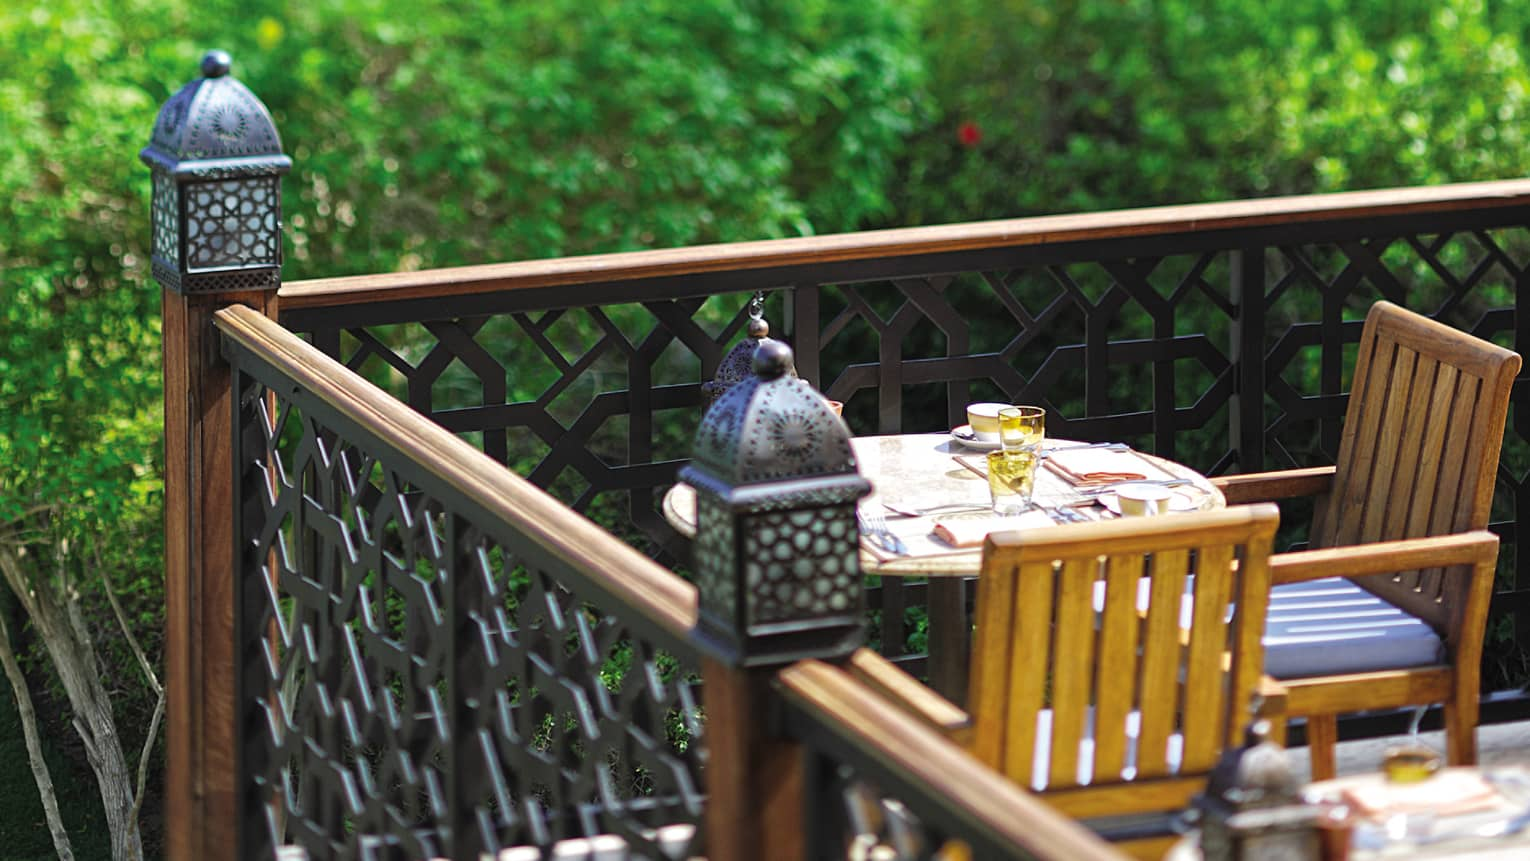 Close-up of small lanterns on wood corner balcony by small cafe table